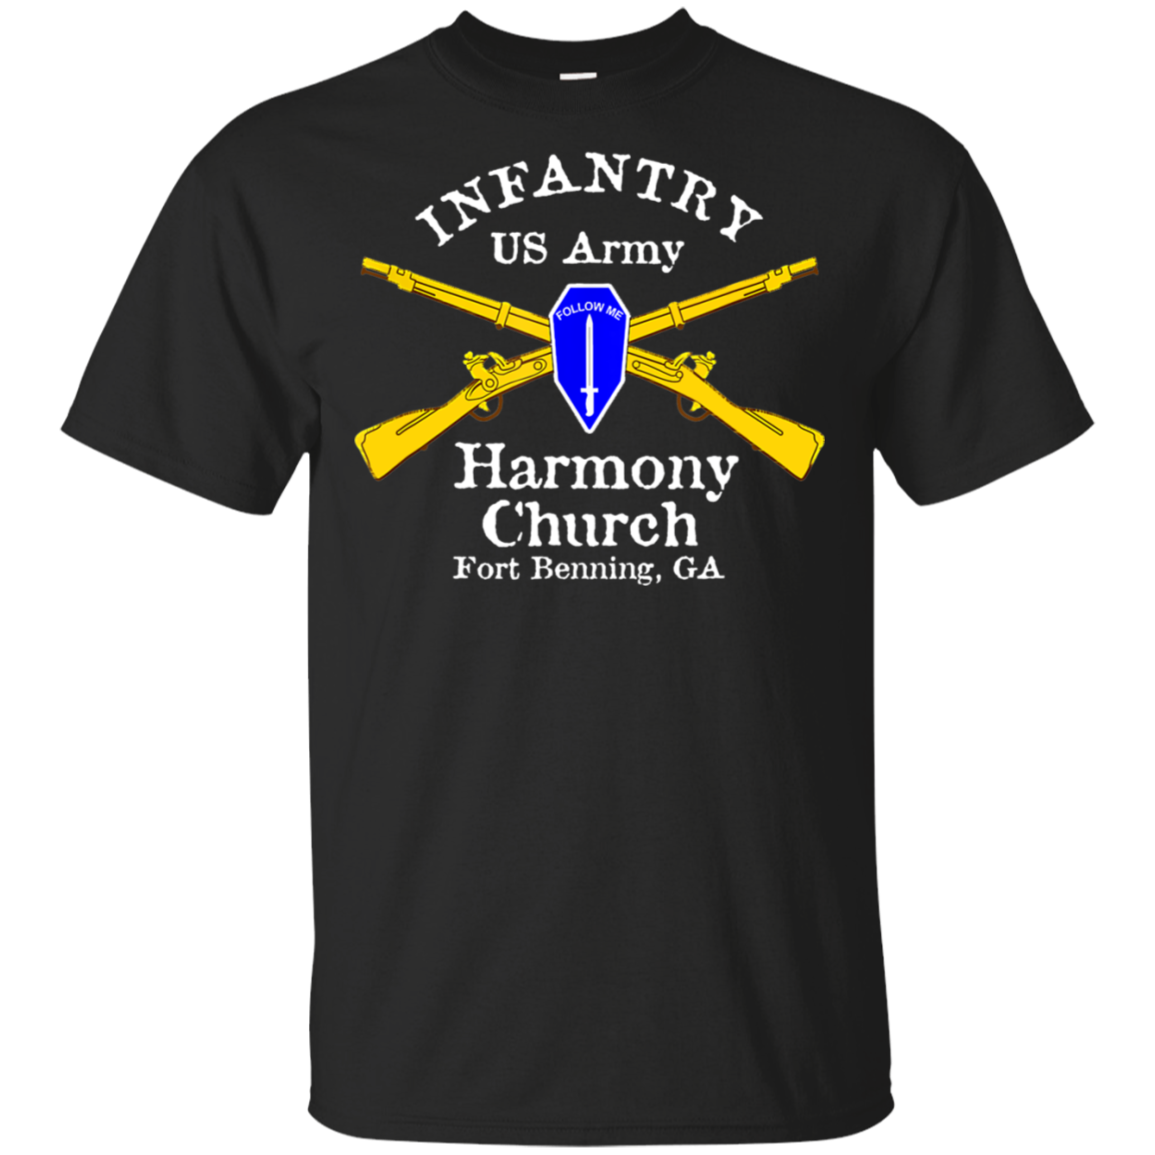 US Army Infantry Harmony Church T-Shirt